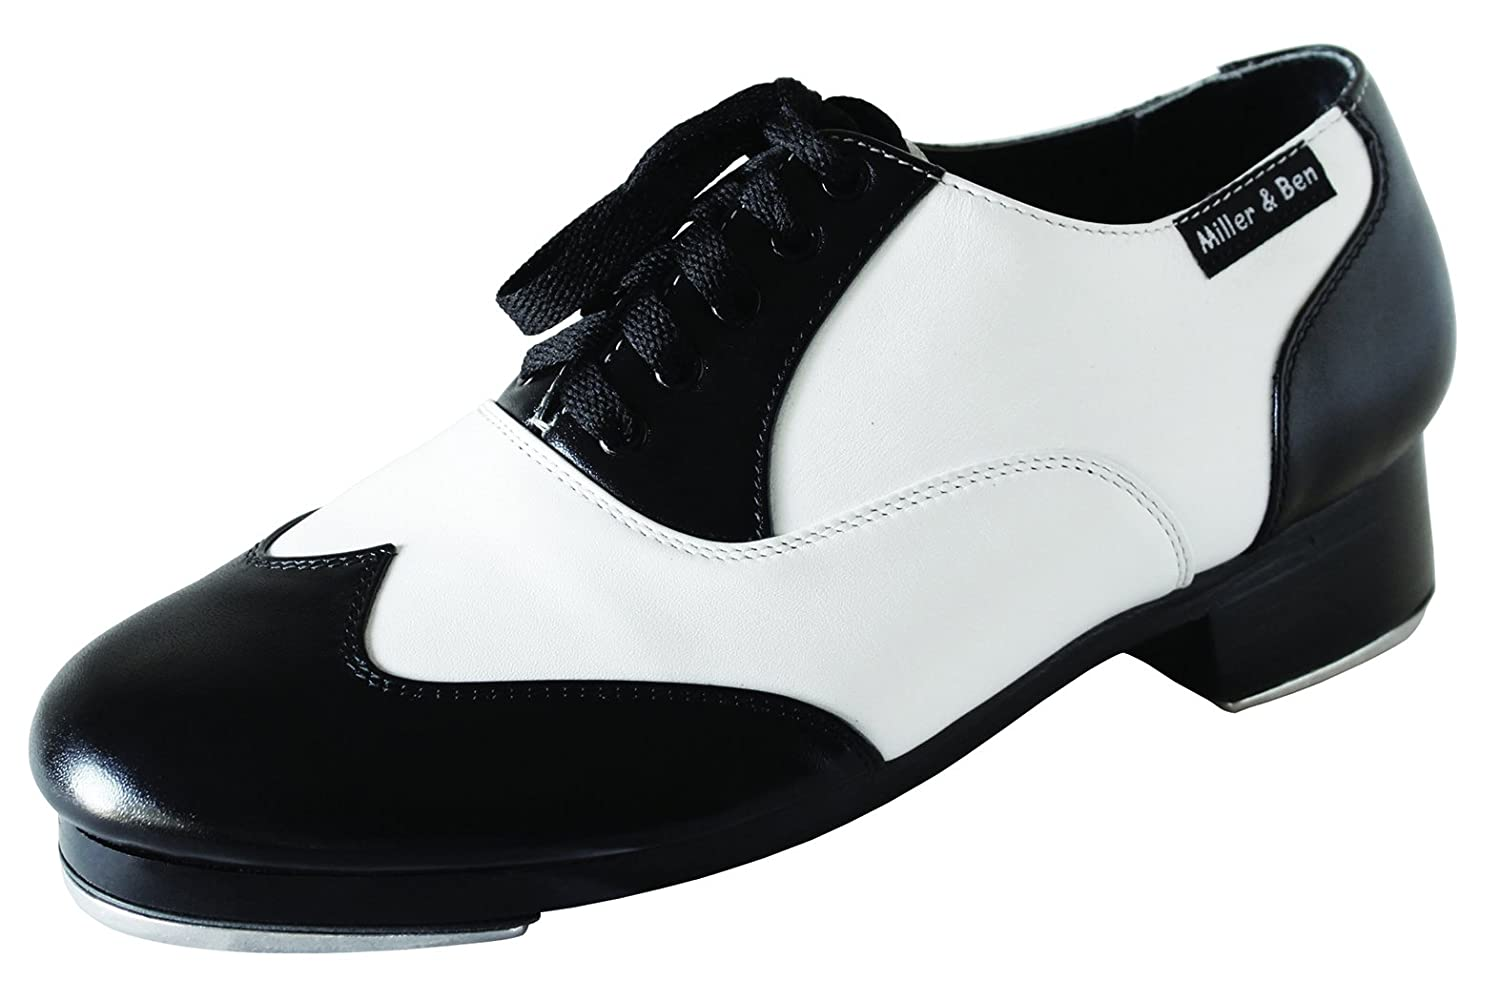 Rockabilly Men's Clothing Miller & Ben Tap Shoes Jazz-Tap Master Black & White - STANDARD SIZES $285.00 AT vintagedancer.com